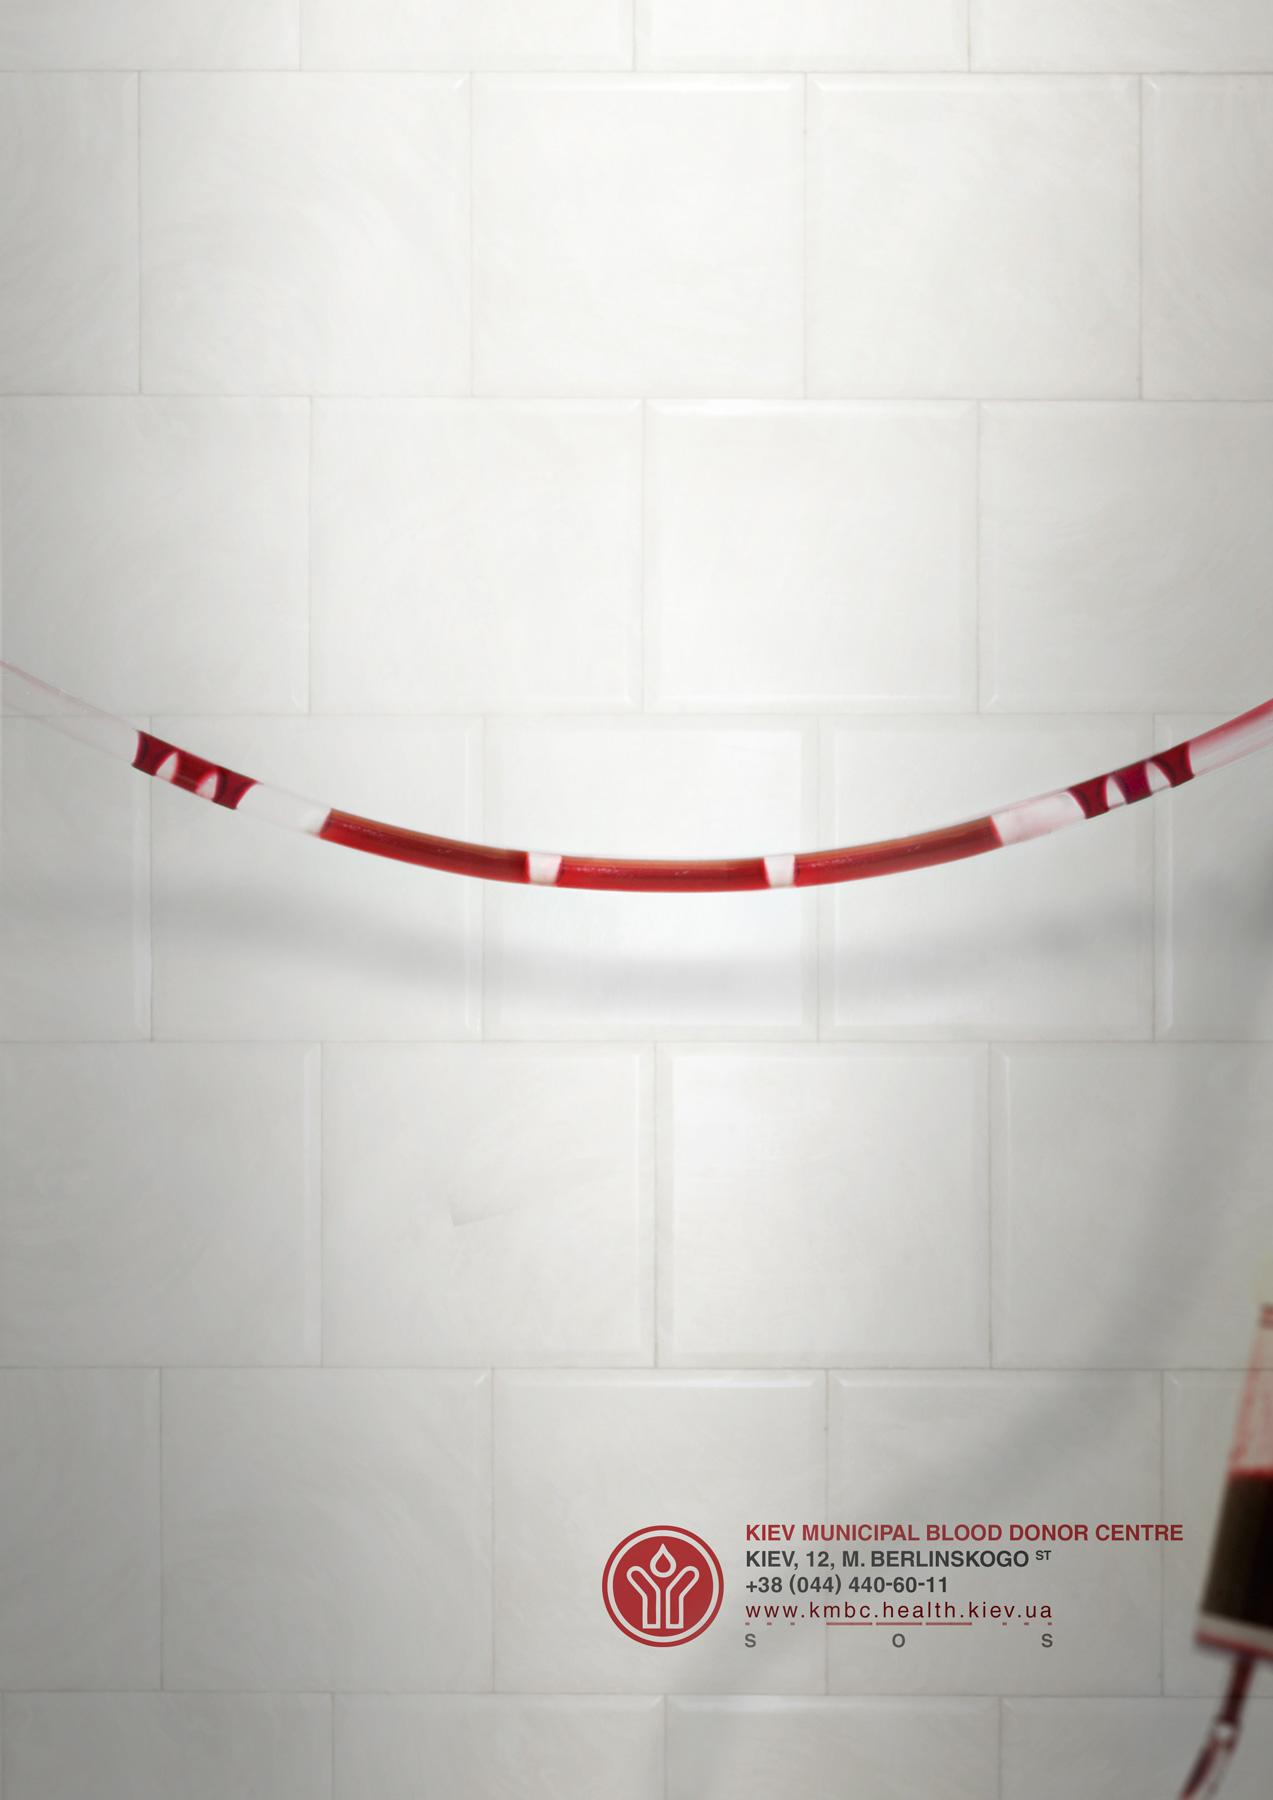 Kiev Municipal Blood Donor Centre Print Ad -  SOS